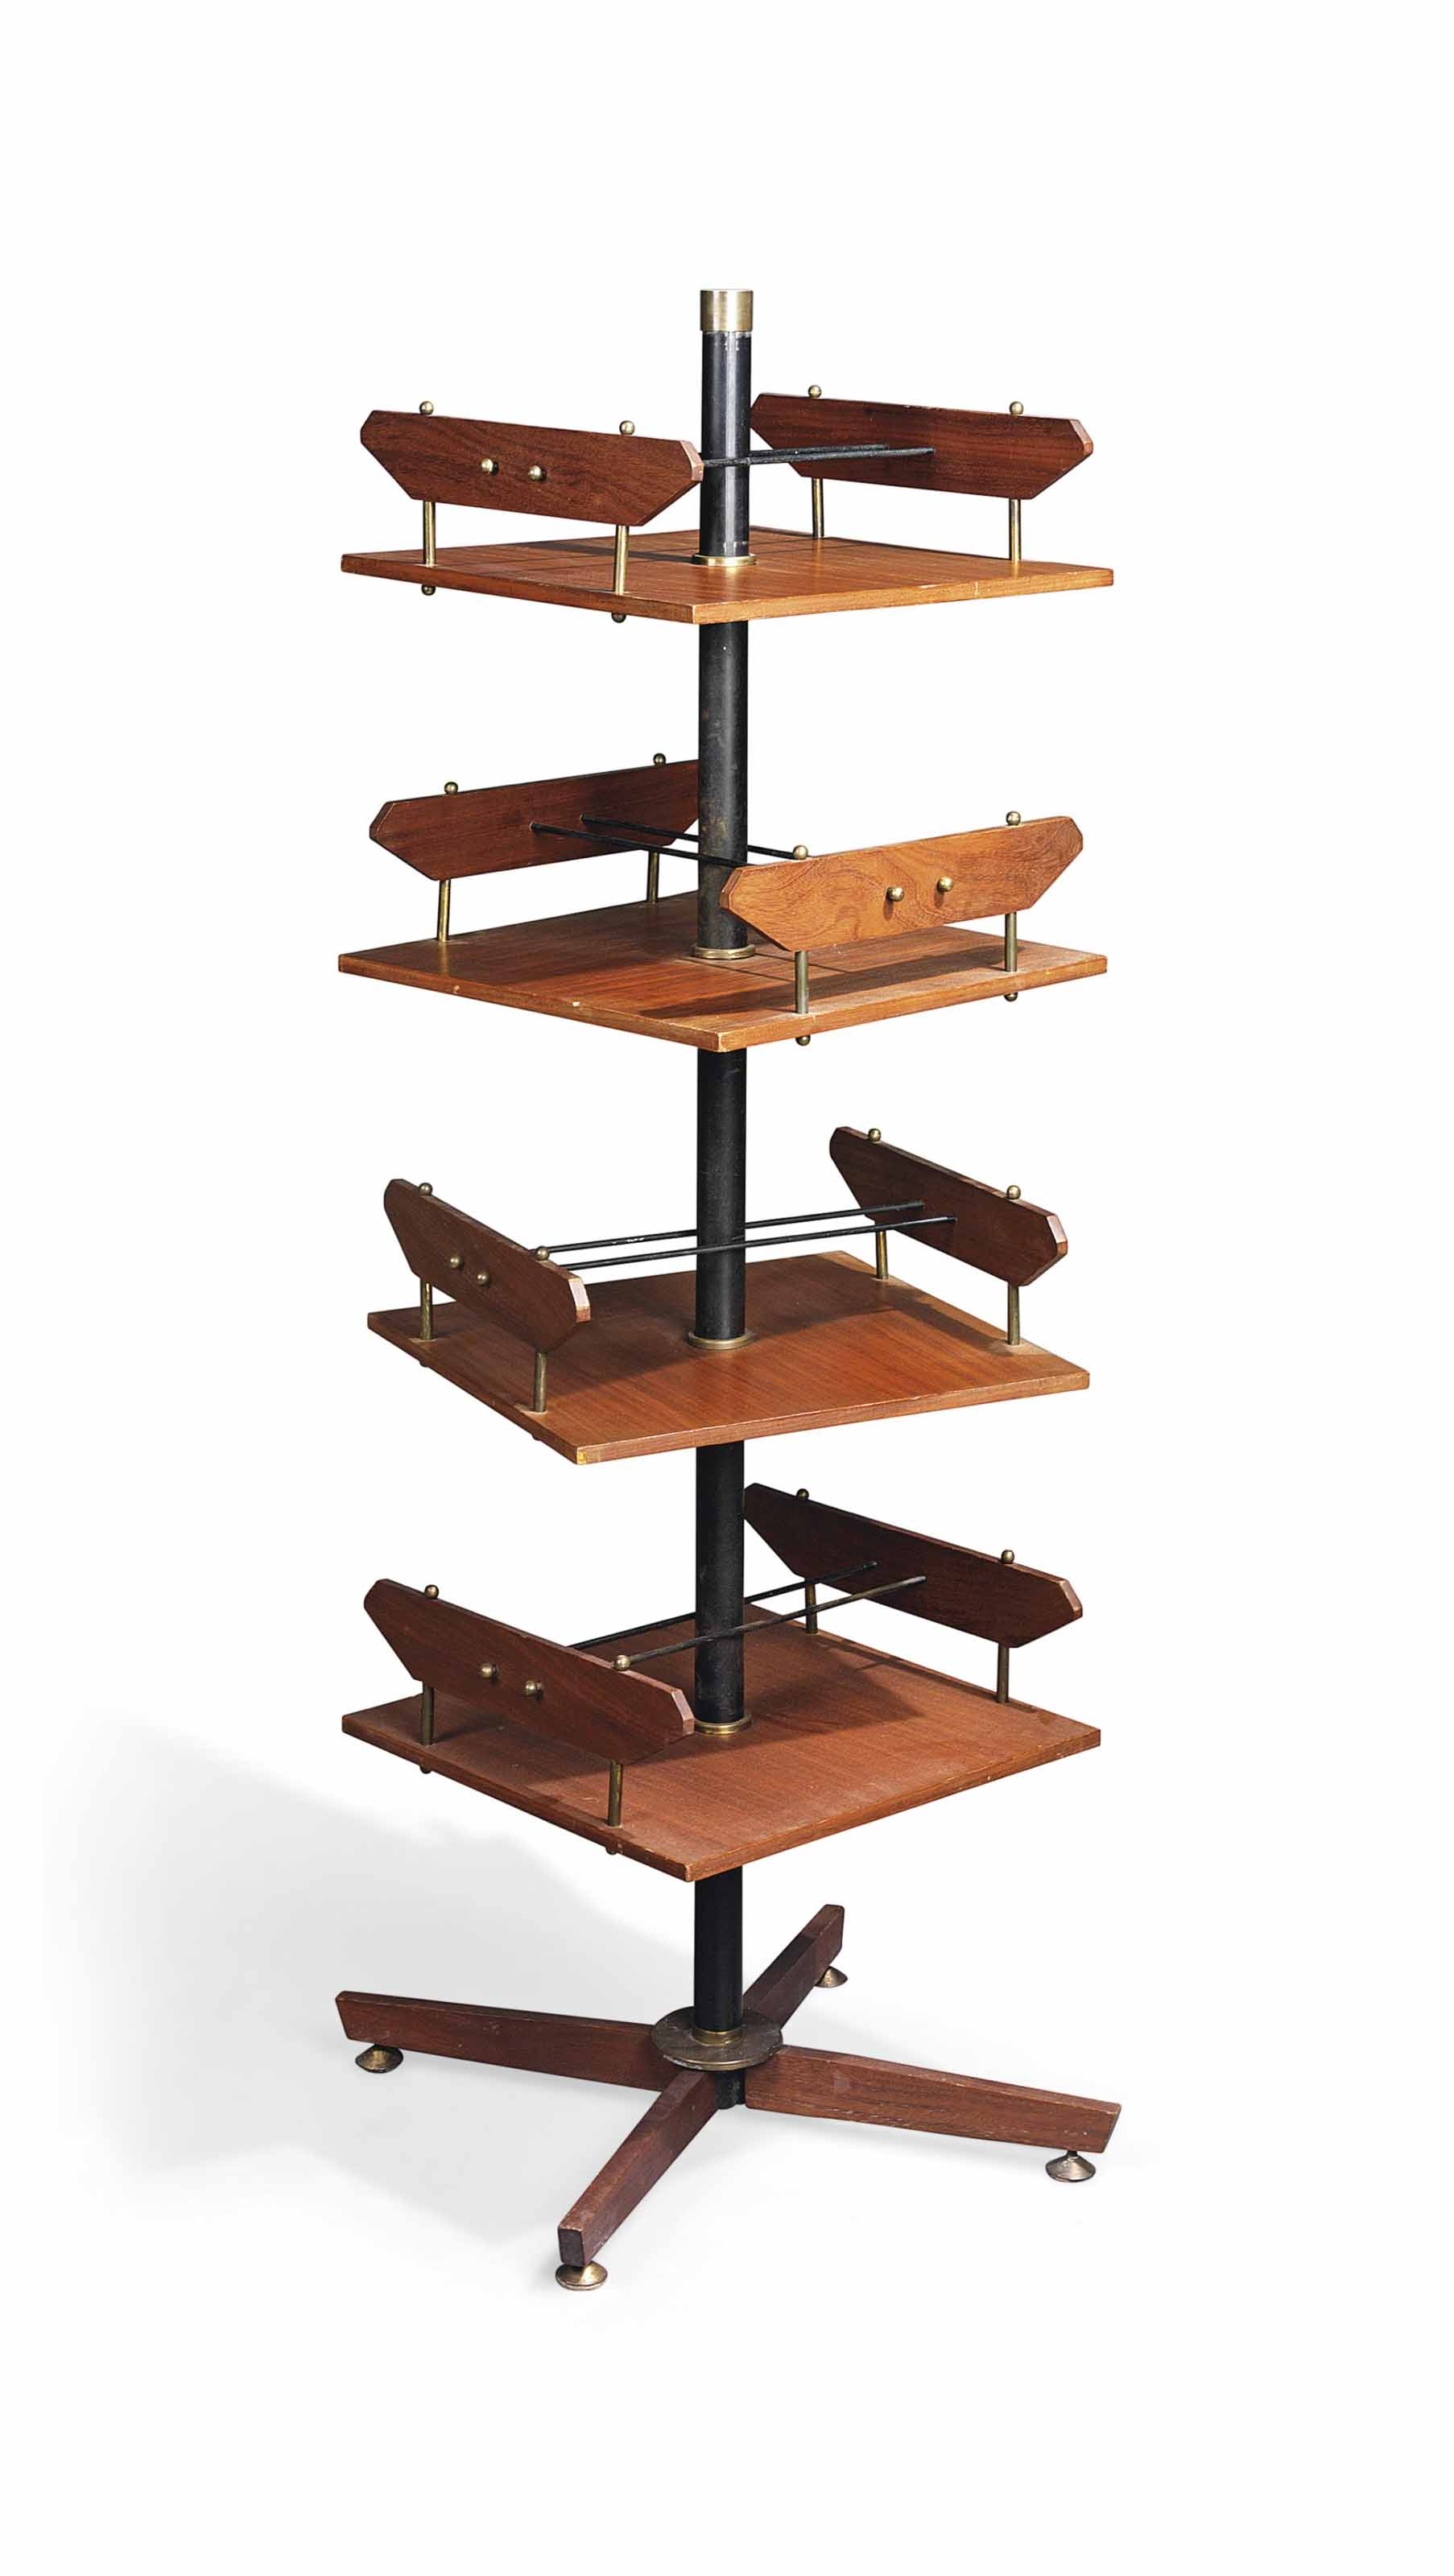 teak wood revolving chair kore wobble an ico parisi walnut and metal bookcase